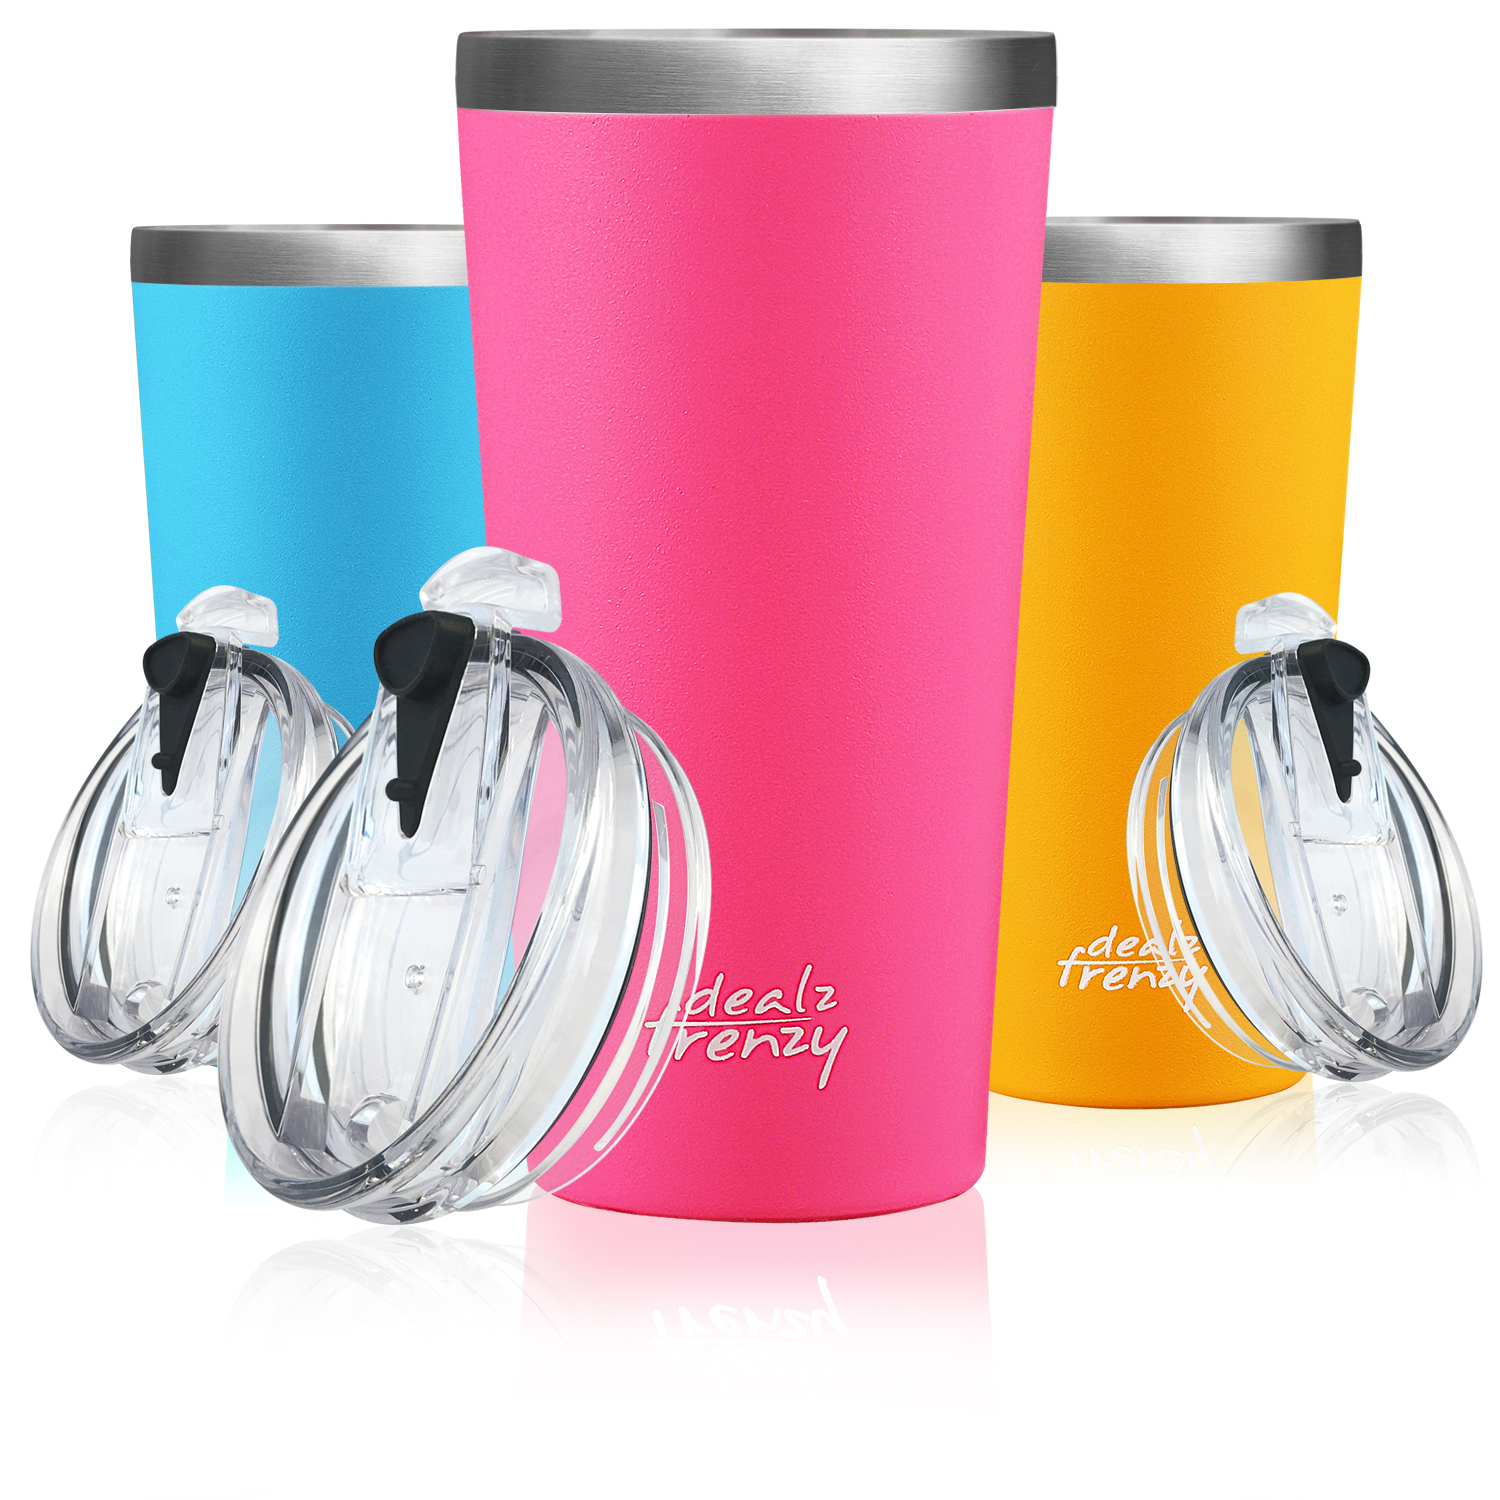 Amazon coupon, only need $7.9 on Dealz Frenzy Stainless Steel Water Bottle with the coupon